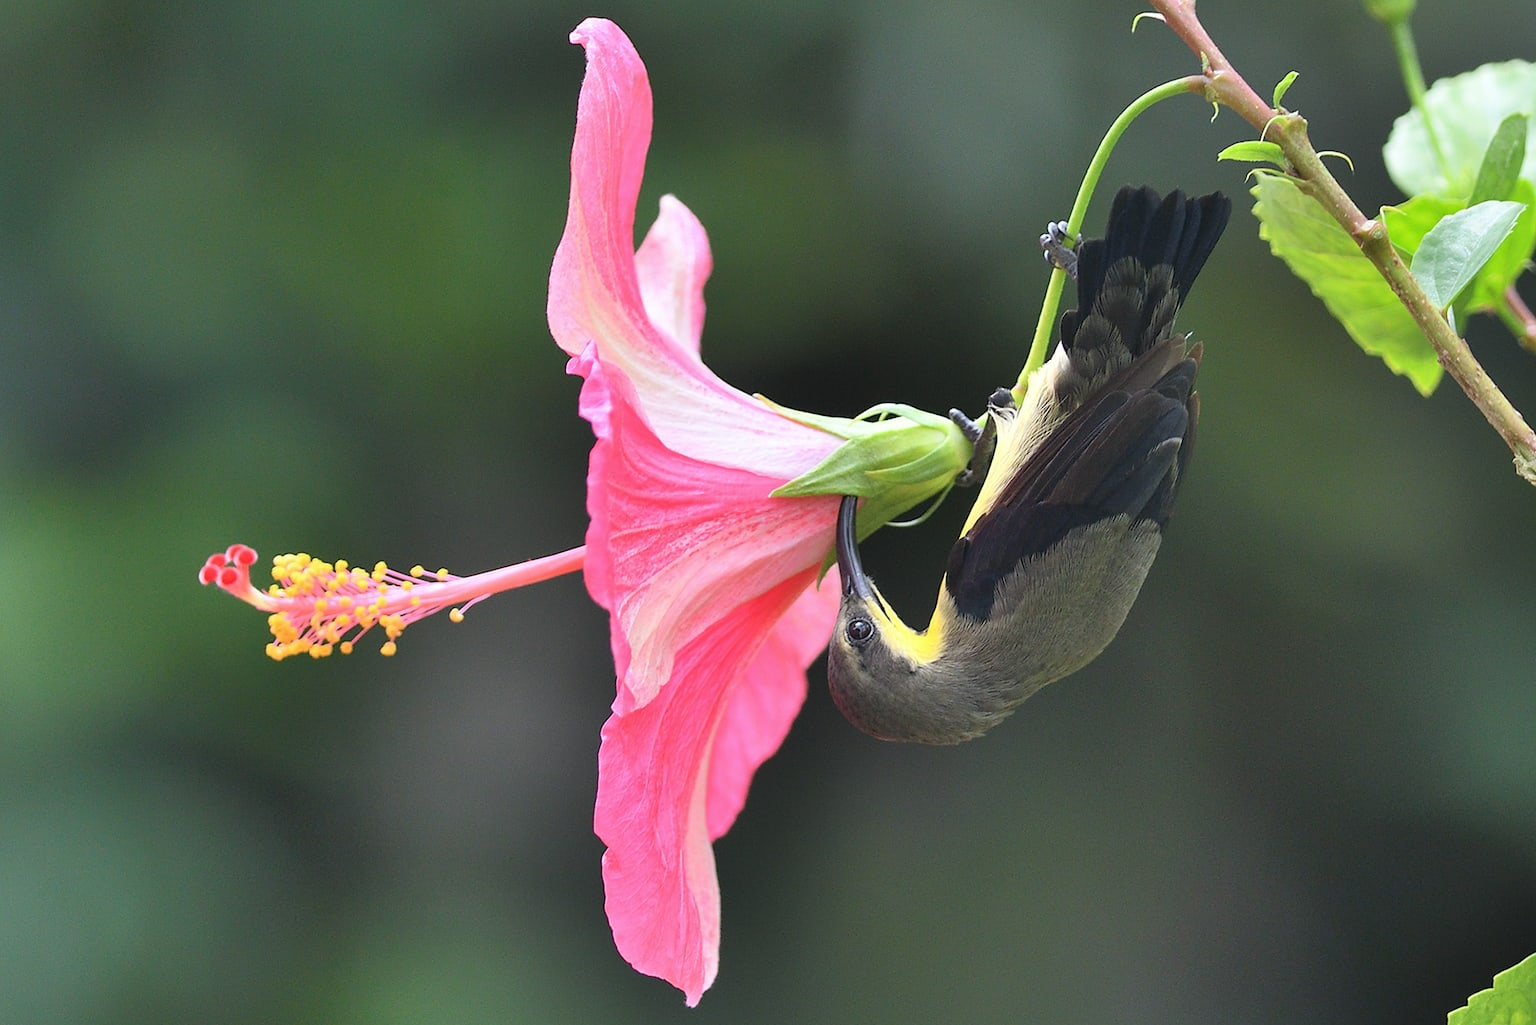 ANIRBAN GHOSH of North 24 Parganas, West Bengal, photographed this acrobatic male purple sunbird collecting nectar from a pink hibiscus flower growing on a plant in his courtyard.